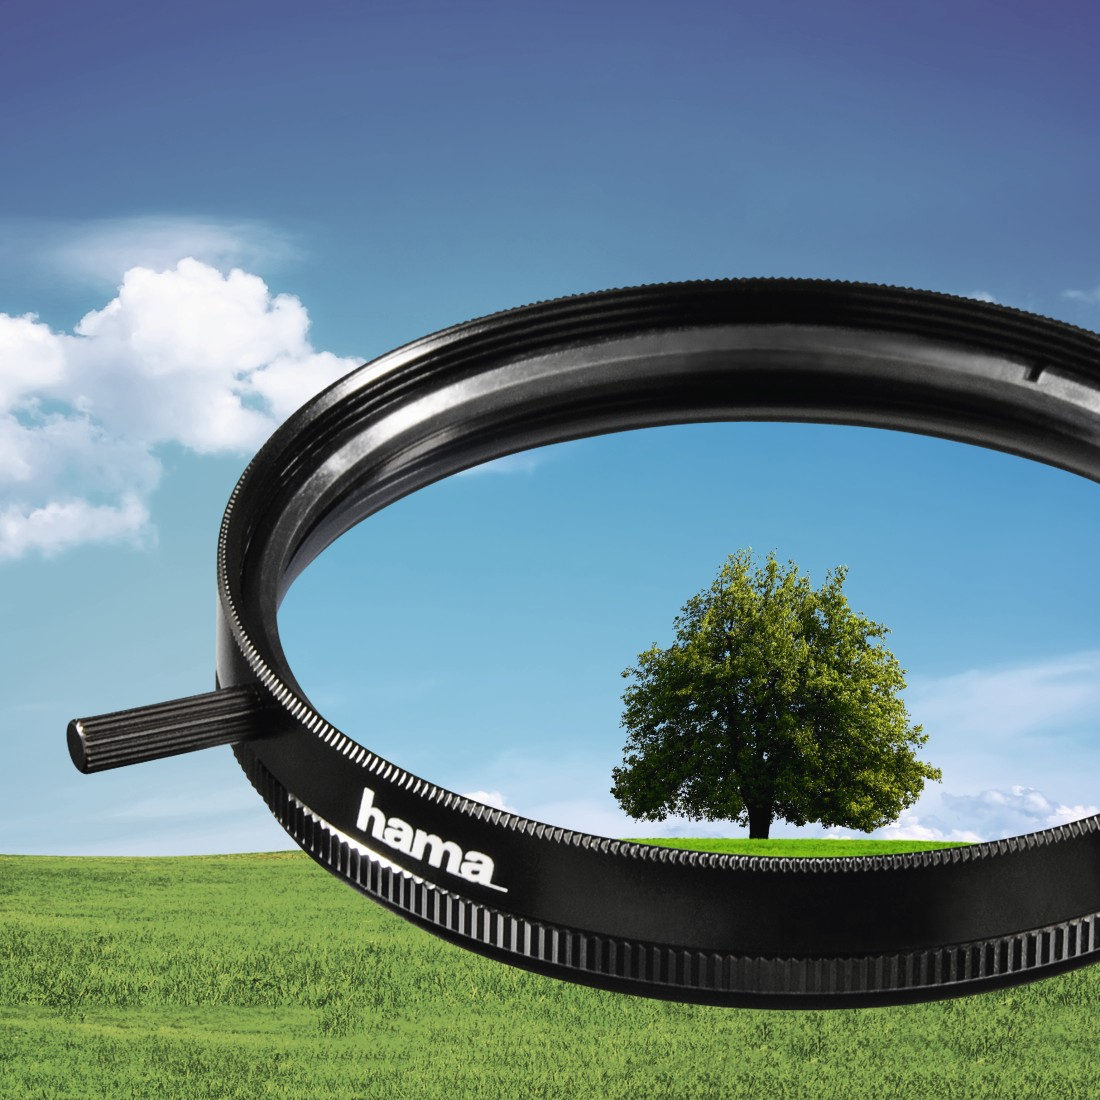 awx High-Res Appliance - Hama, Polarizing Filter, circular, AR coated, 82.0 mm